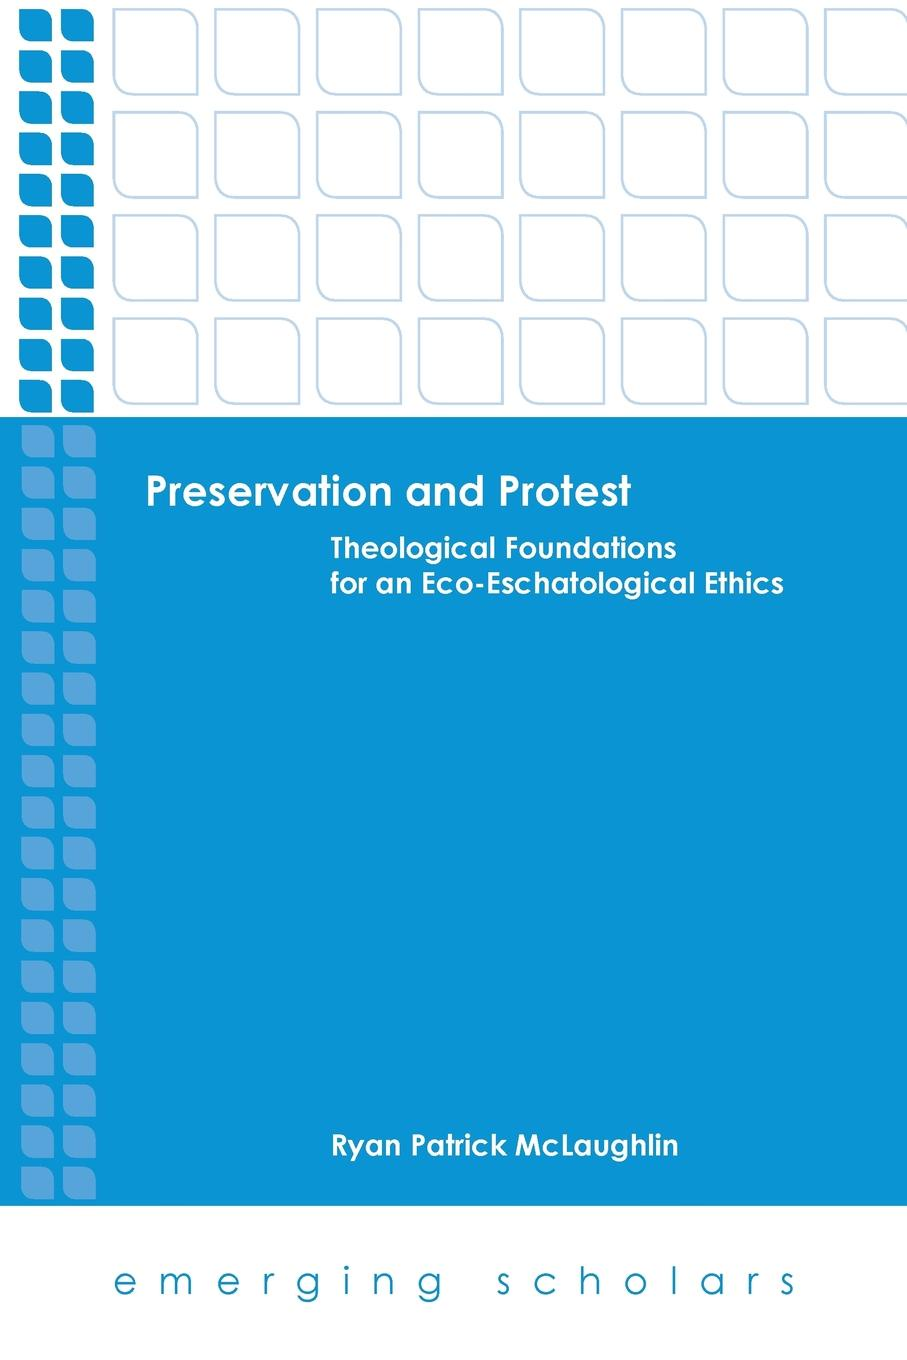 Ryan Patrick McLaughlin Preservation and Protest. Theological Foundations for an Eco-Eschatological Ethics ryan asleson nathaniel t schutta foundations of ajax